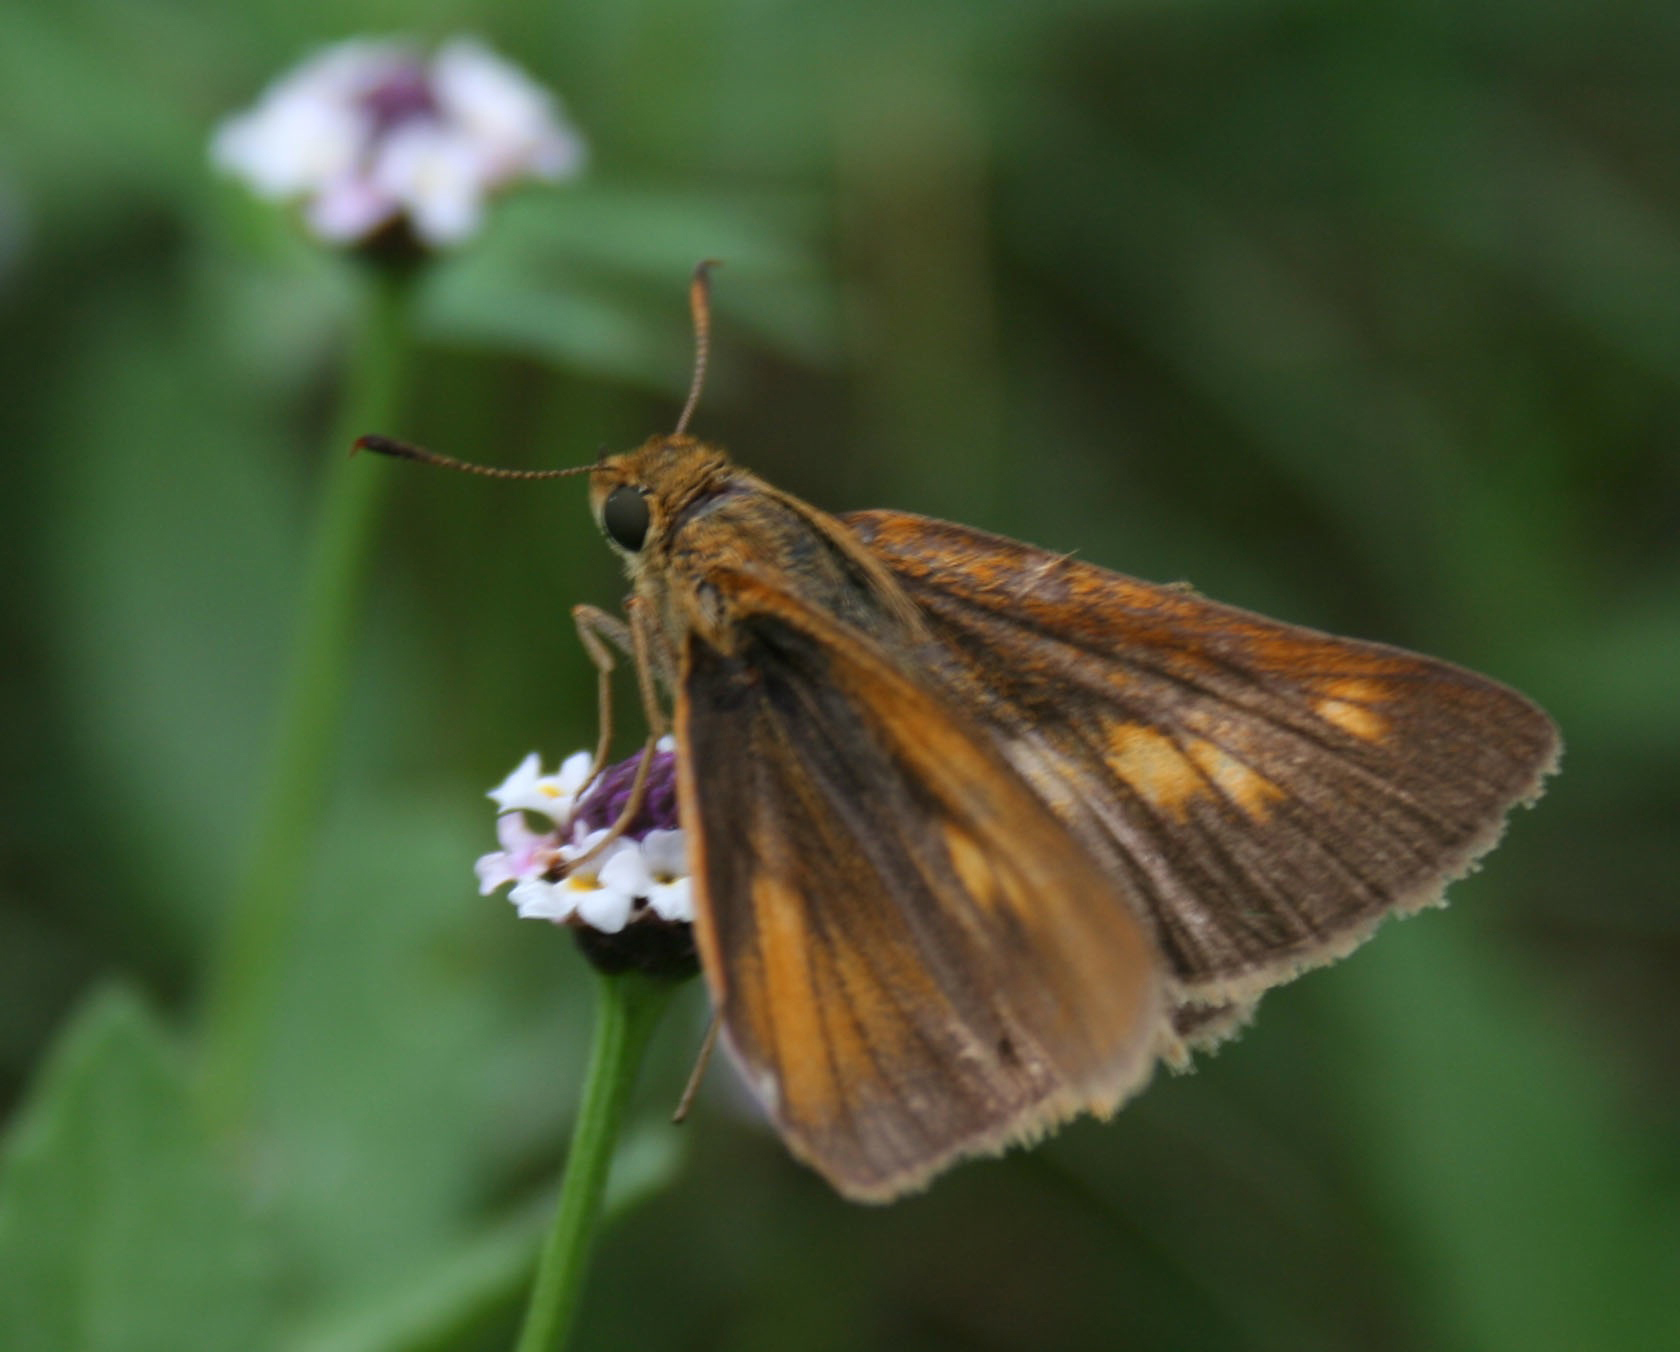 Bay Skipper: David Sarkozi